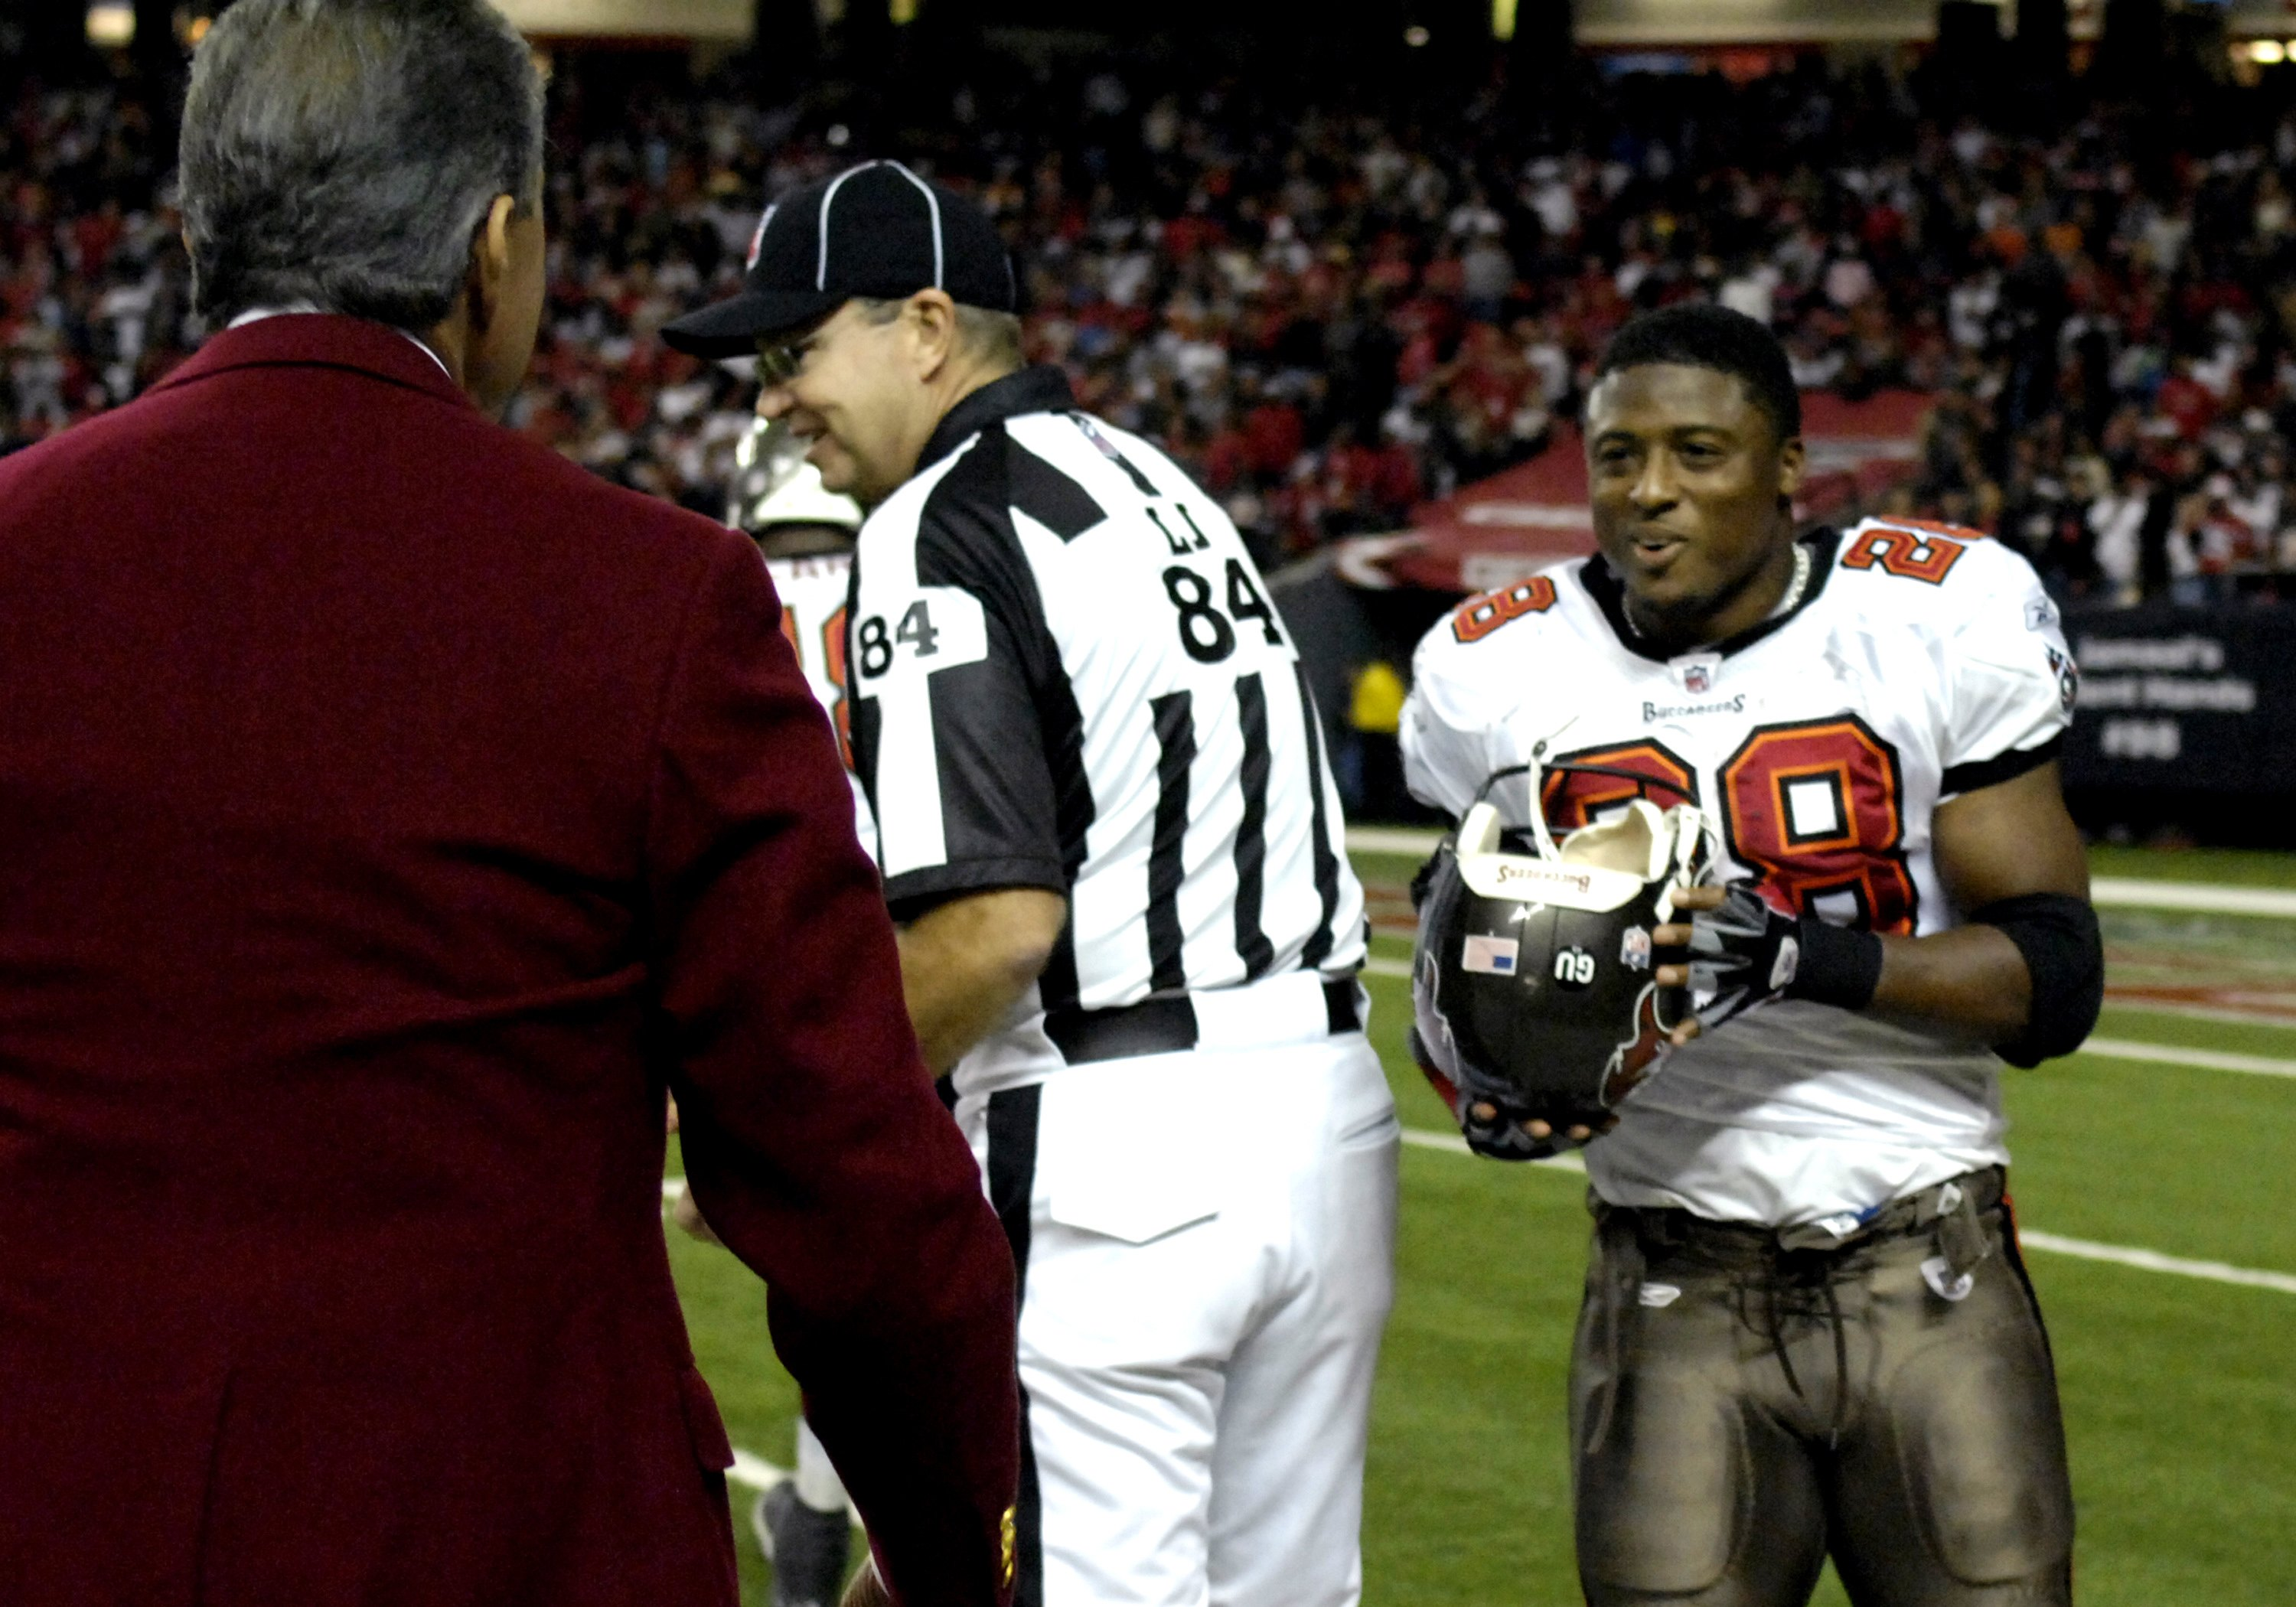 ATLANTA - DECEMBER 14: Onwer Arthur Blank (left) returns the helmet of running back Warrick Dunn #28 of the Tampa Bay Buccaneers at the Georgia Dome on December 14, 2008 in Atlanta, Georgia. Dunn lost his helmet during a tackle on the sidelines near Blank